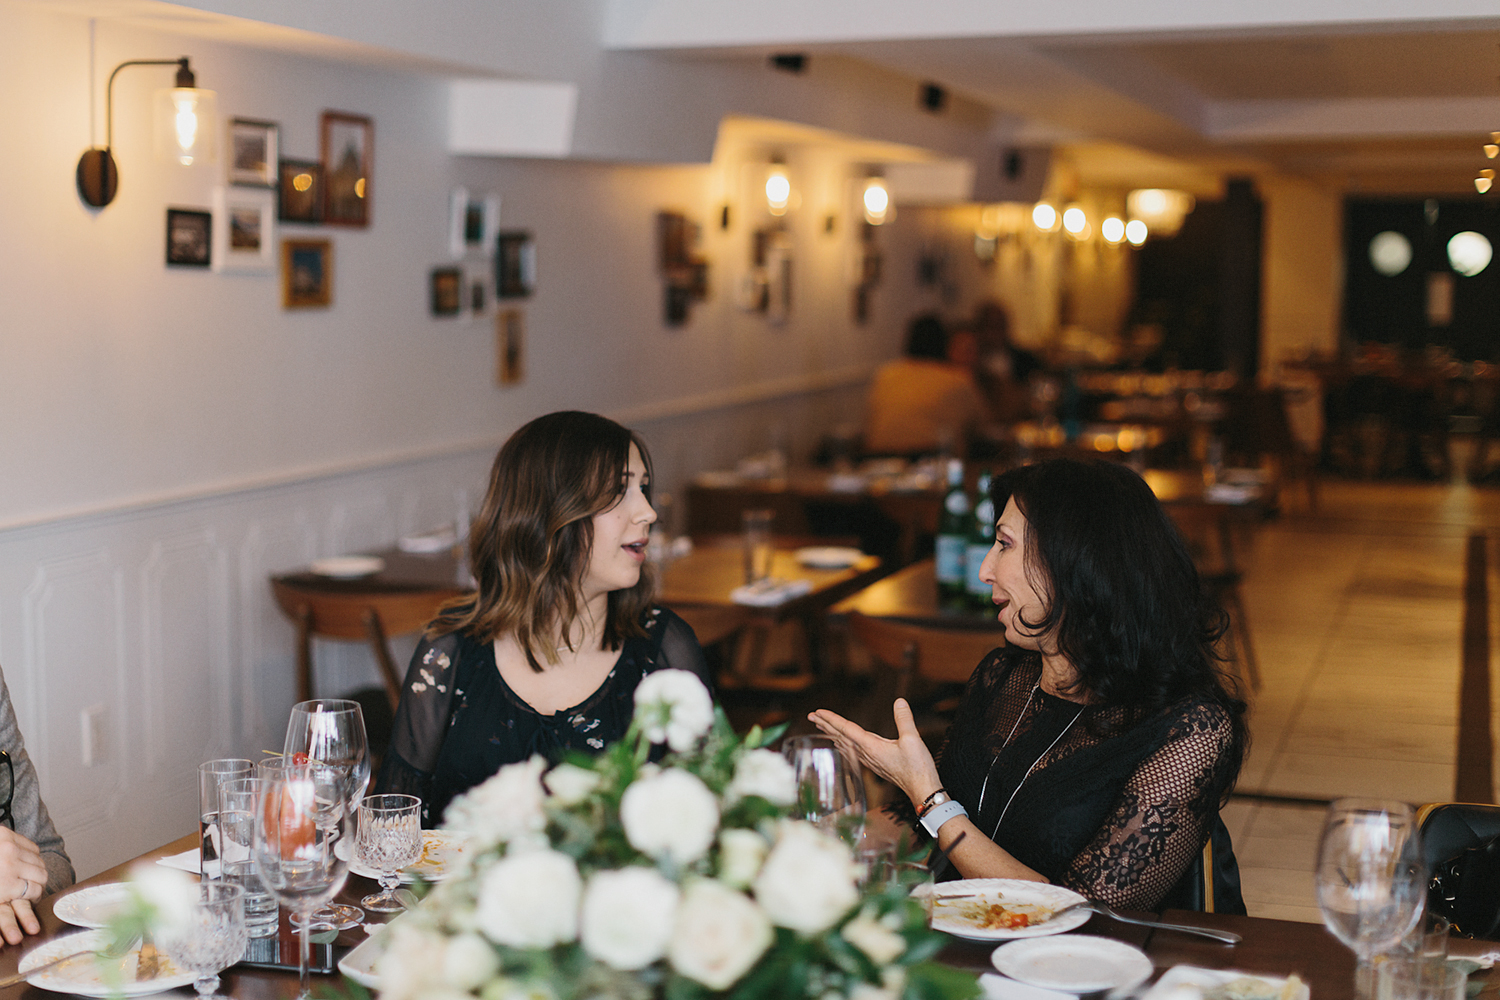 toronto-restaurant-elopement-intimate-wedding-guests-candid-moments.jpg